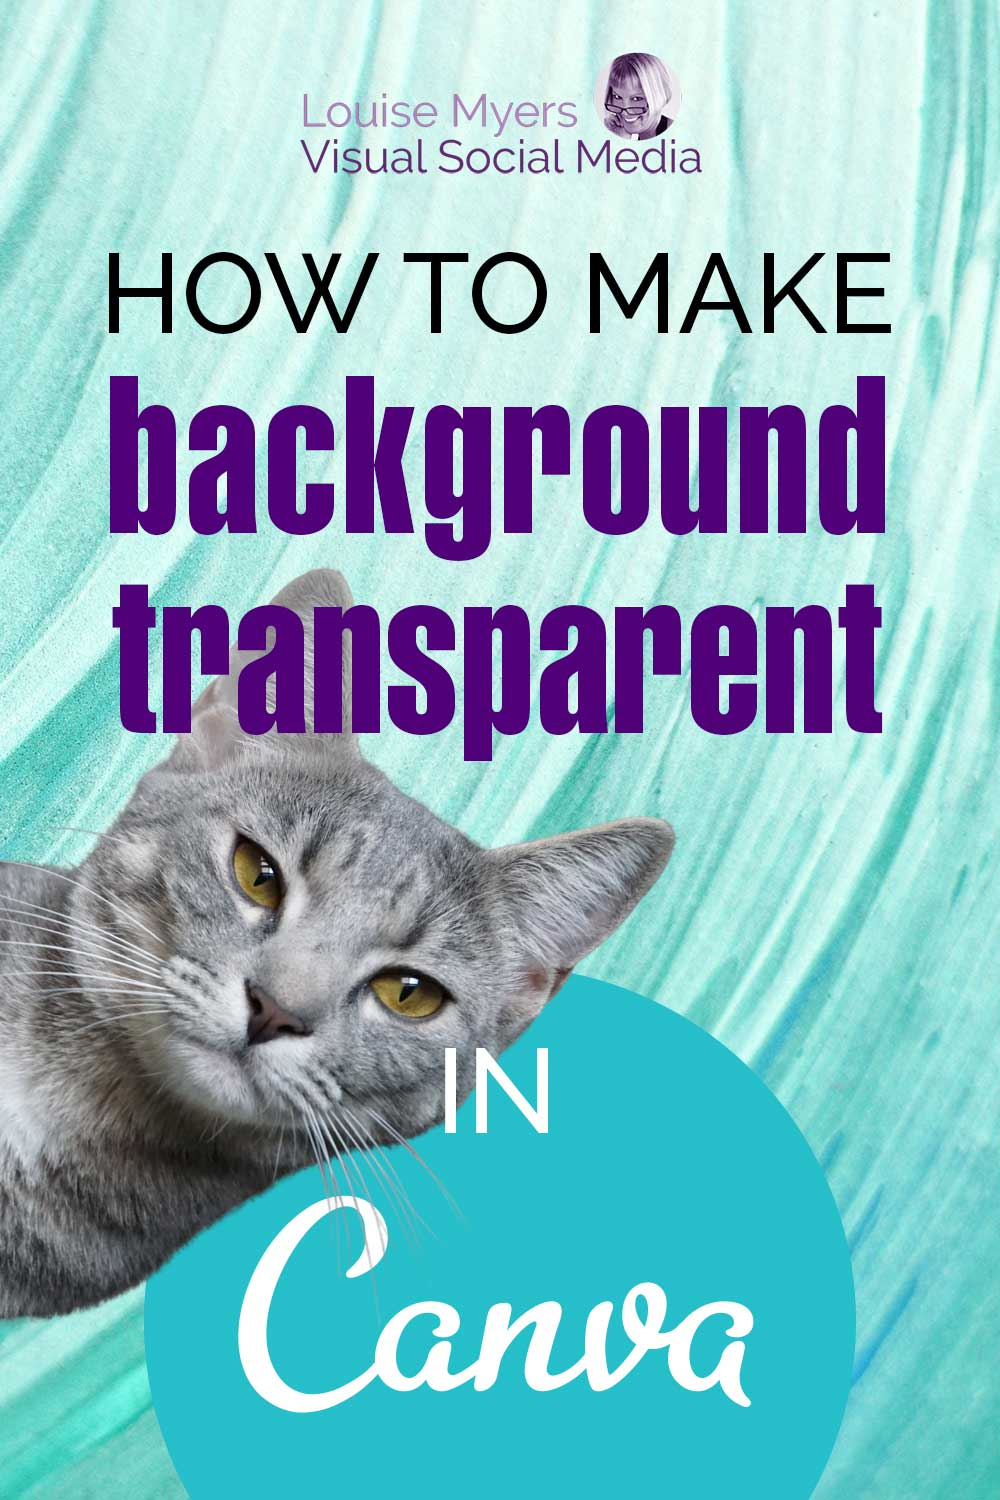 cat with transparent background on pinnable image with canva logo.